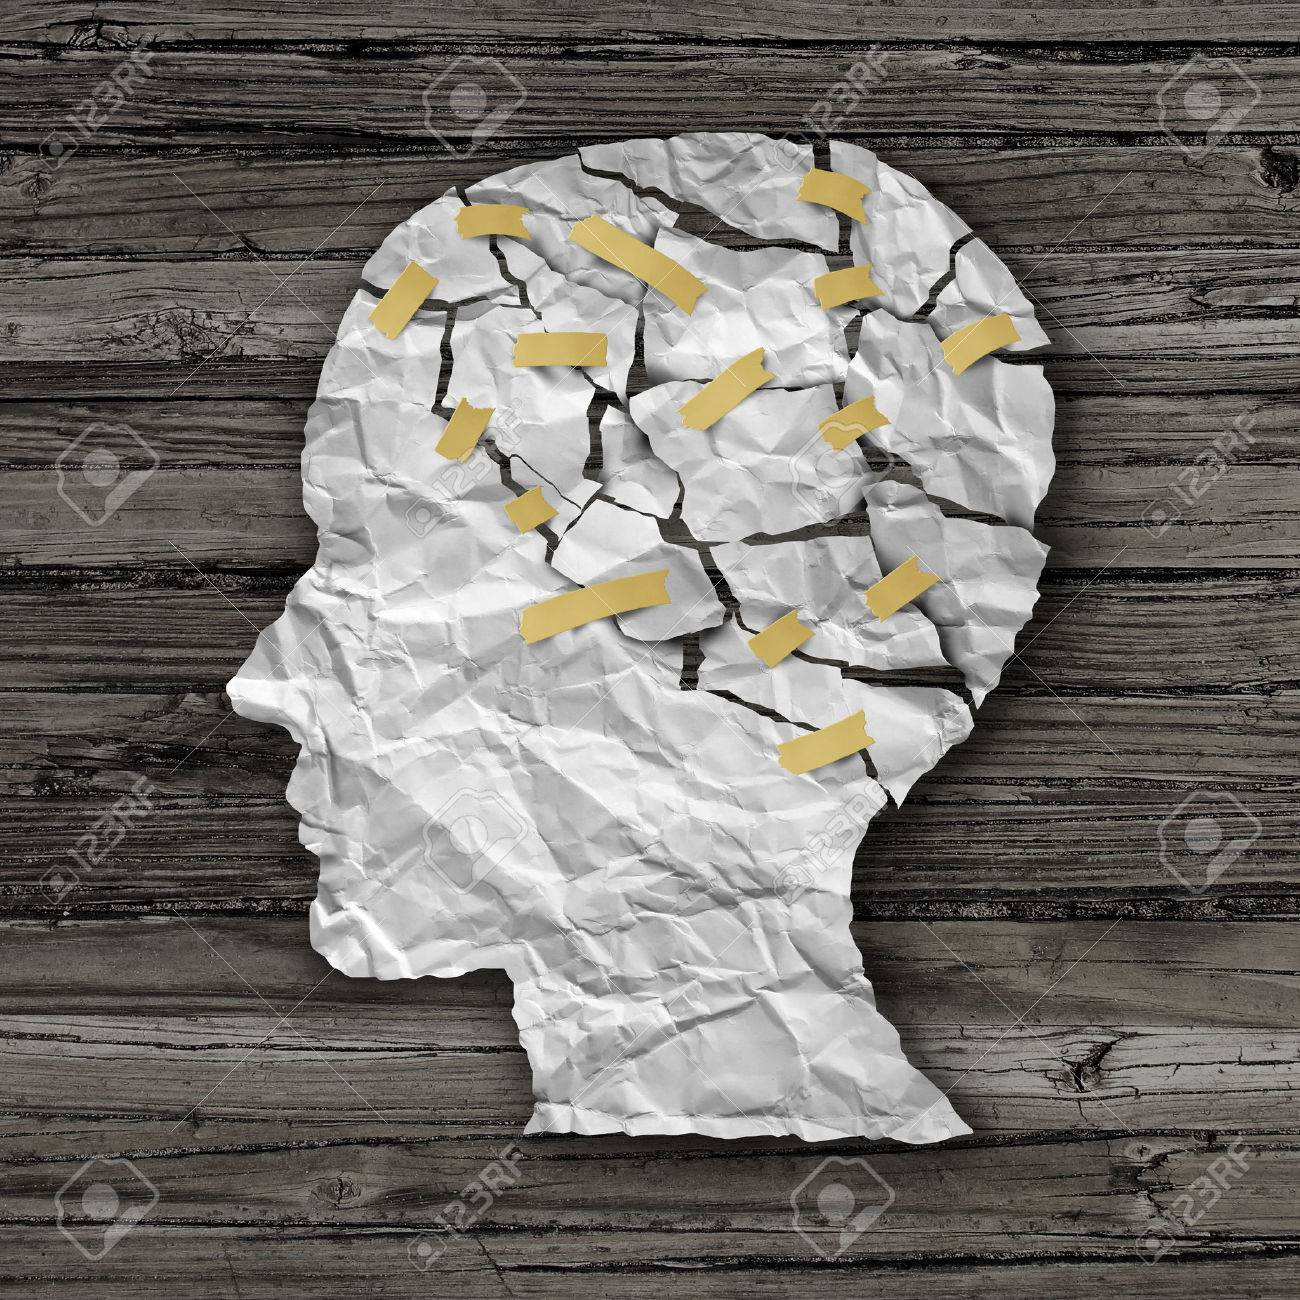 Brain disease therapy and mental health treatment concept as a sheet of torn crumpled white paper taped together shaped as a side profile of a human face on wood as a symbol for neurology surgery and medicine or psychological help. - 33453781